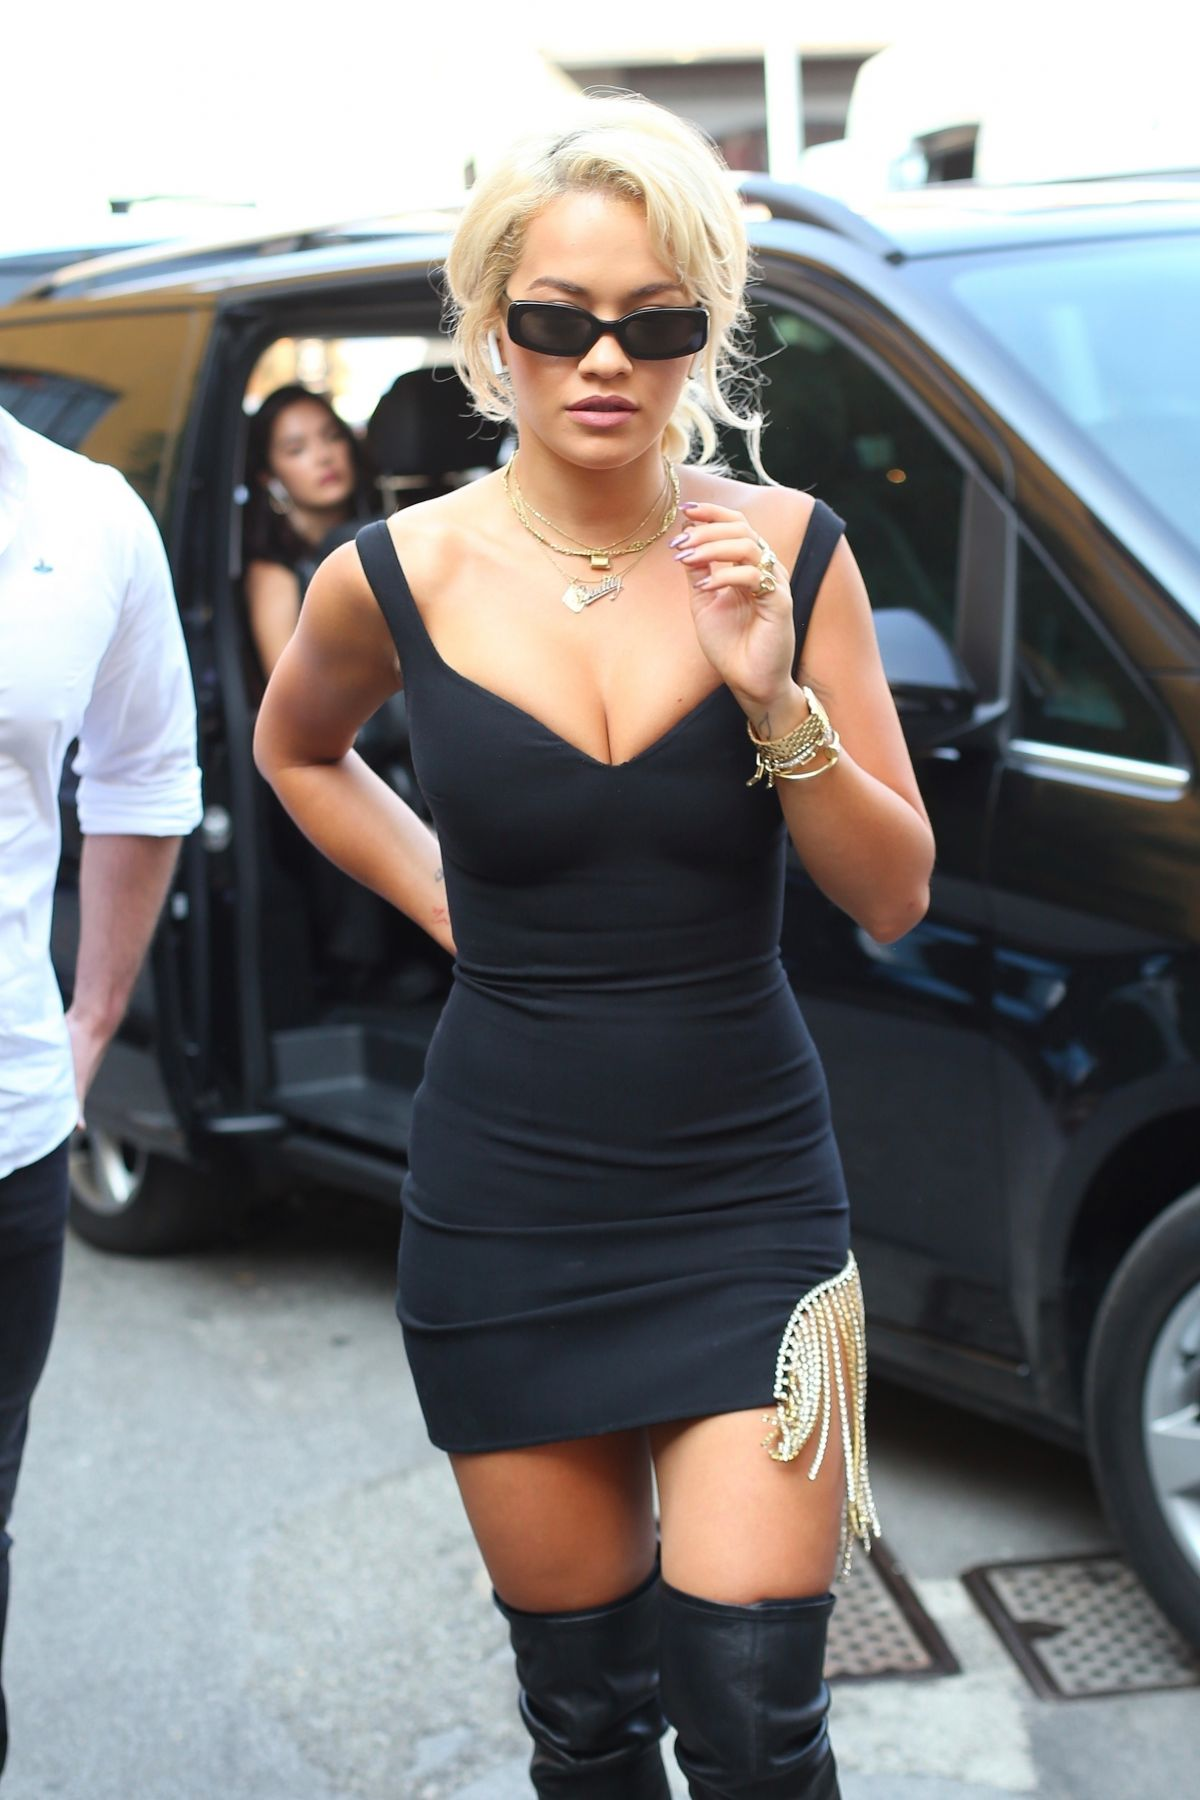 82648486_rita-ora-out-and-about-in-milan-09-21-2018-9.jpg